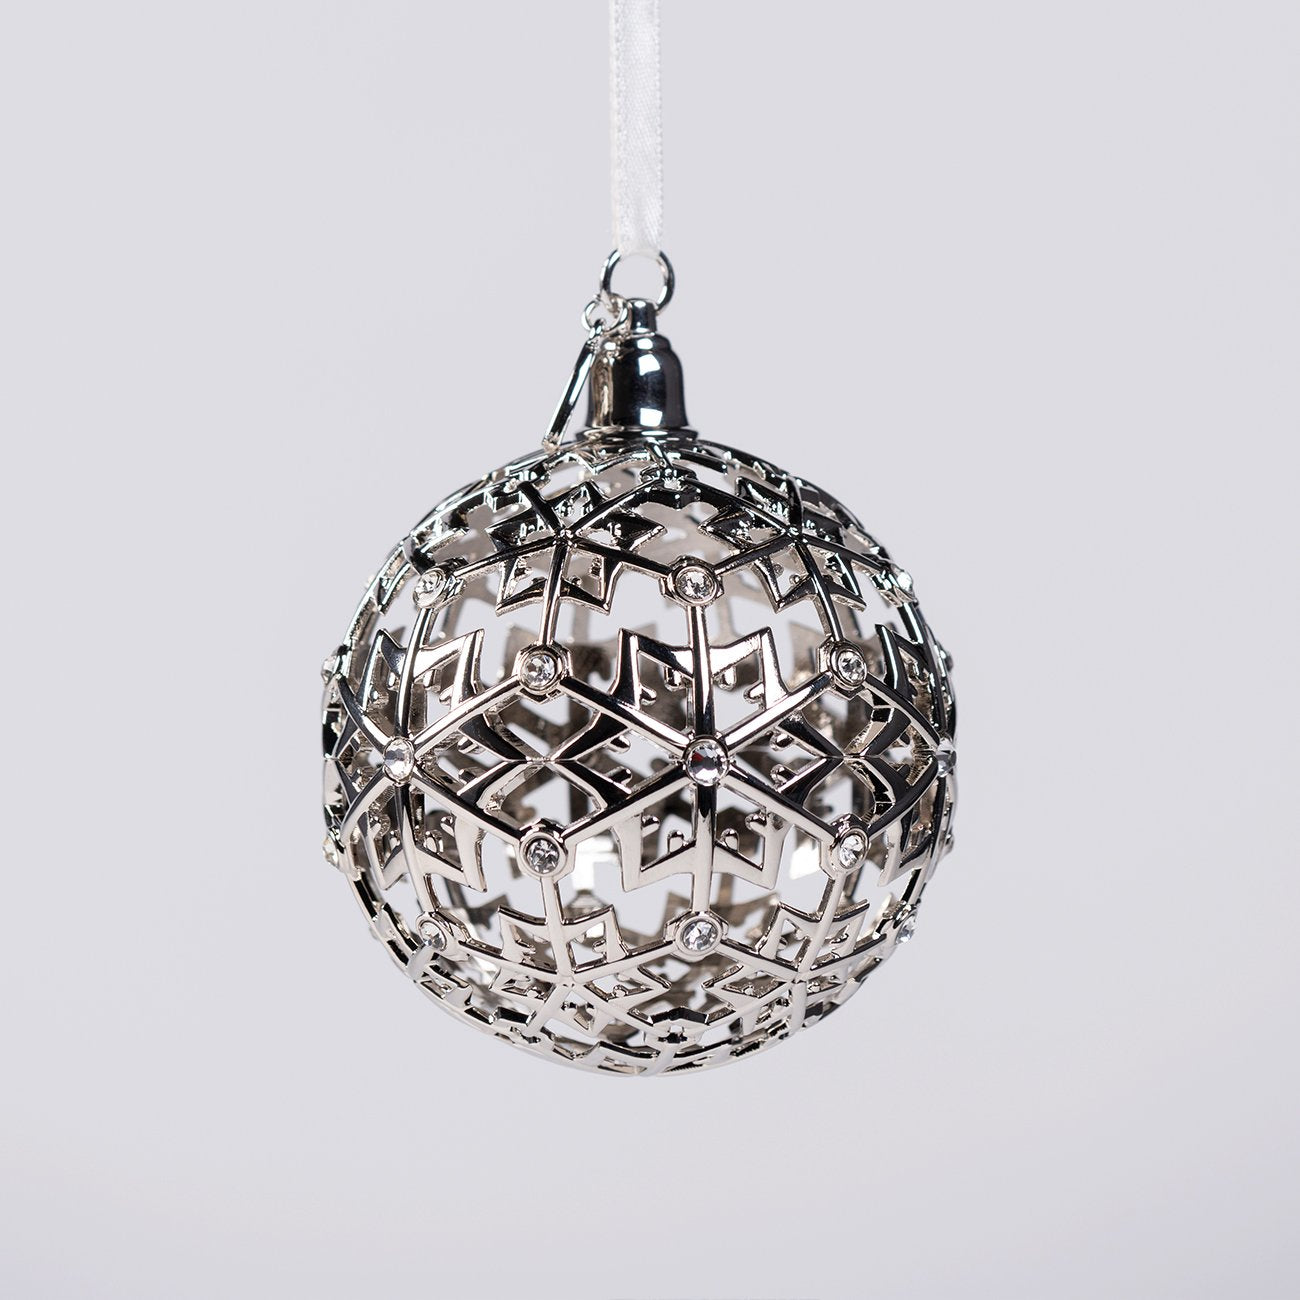 Boeing Jet Snowflake Ball Holiday Ornament